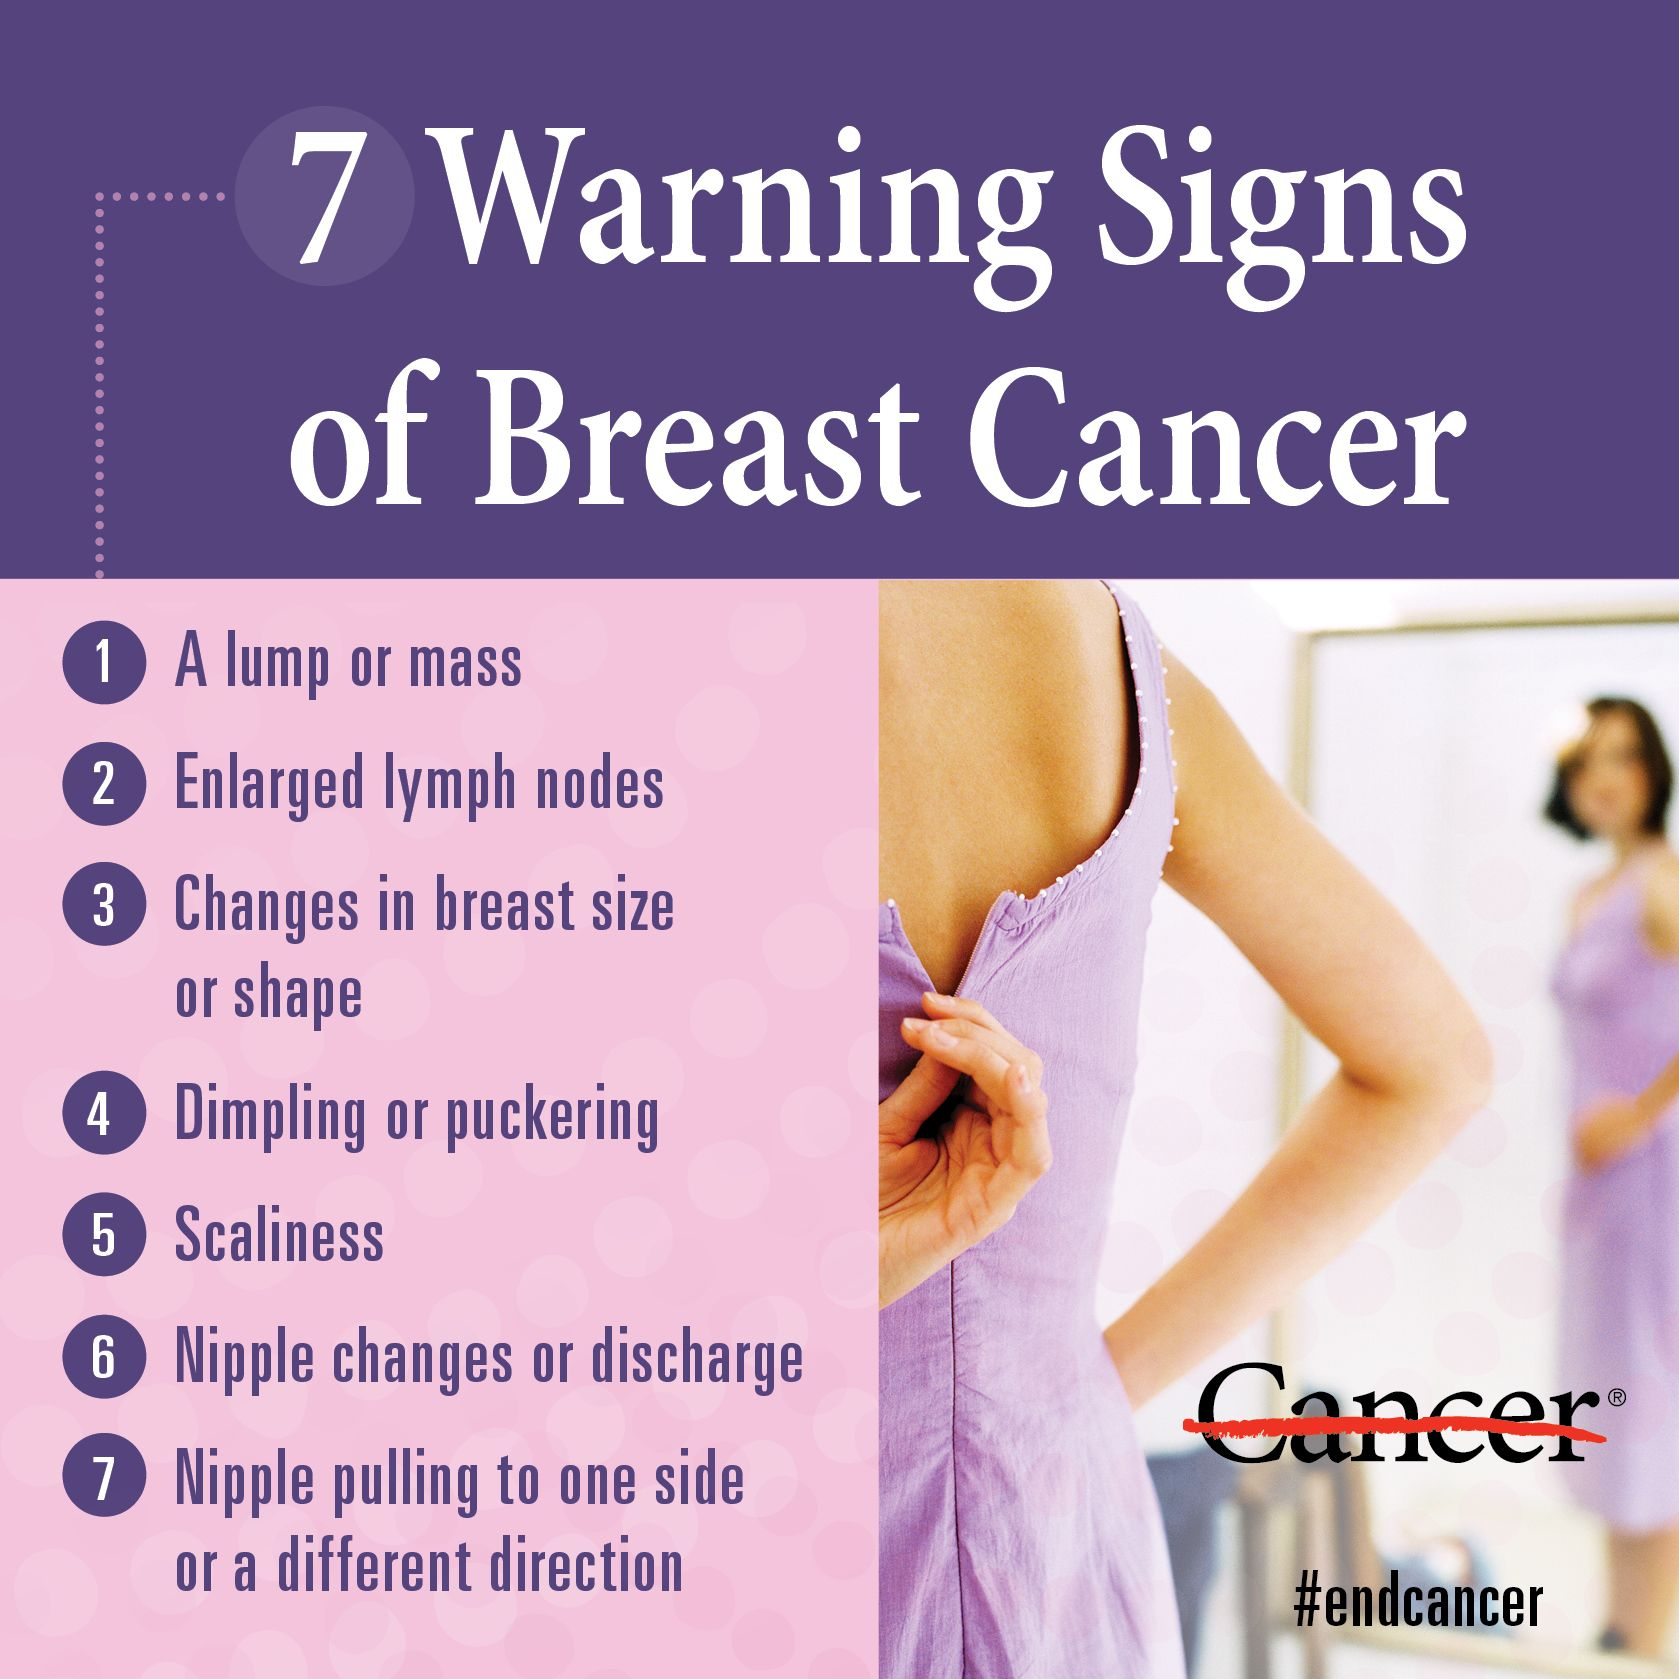 Breast Cancer Awareness Pictures, Symptoms